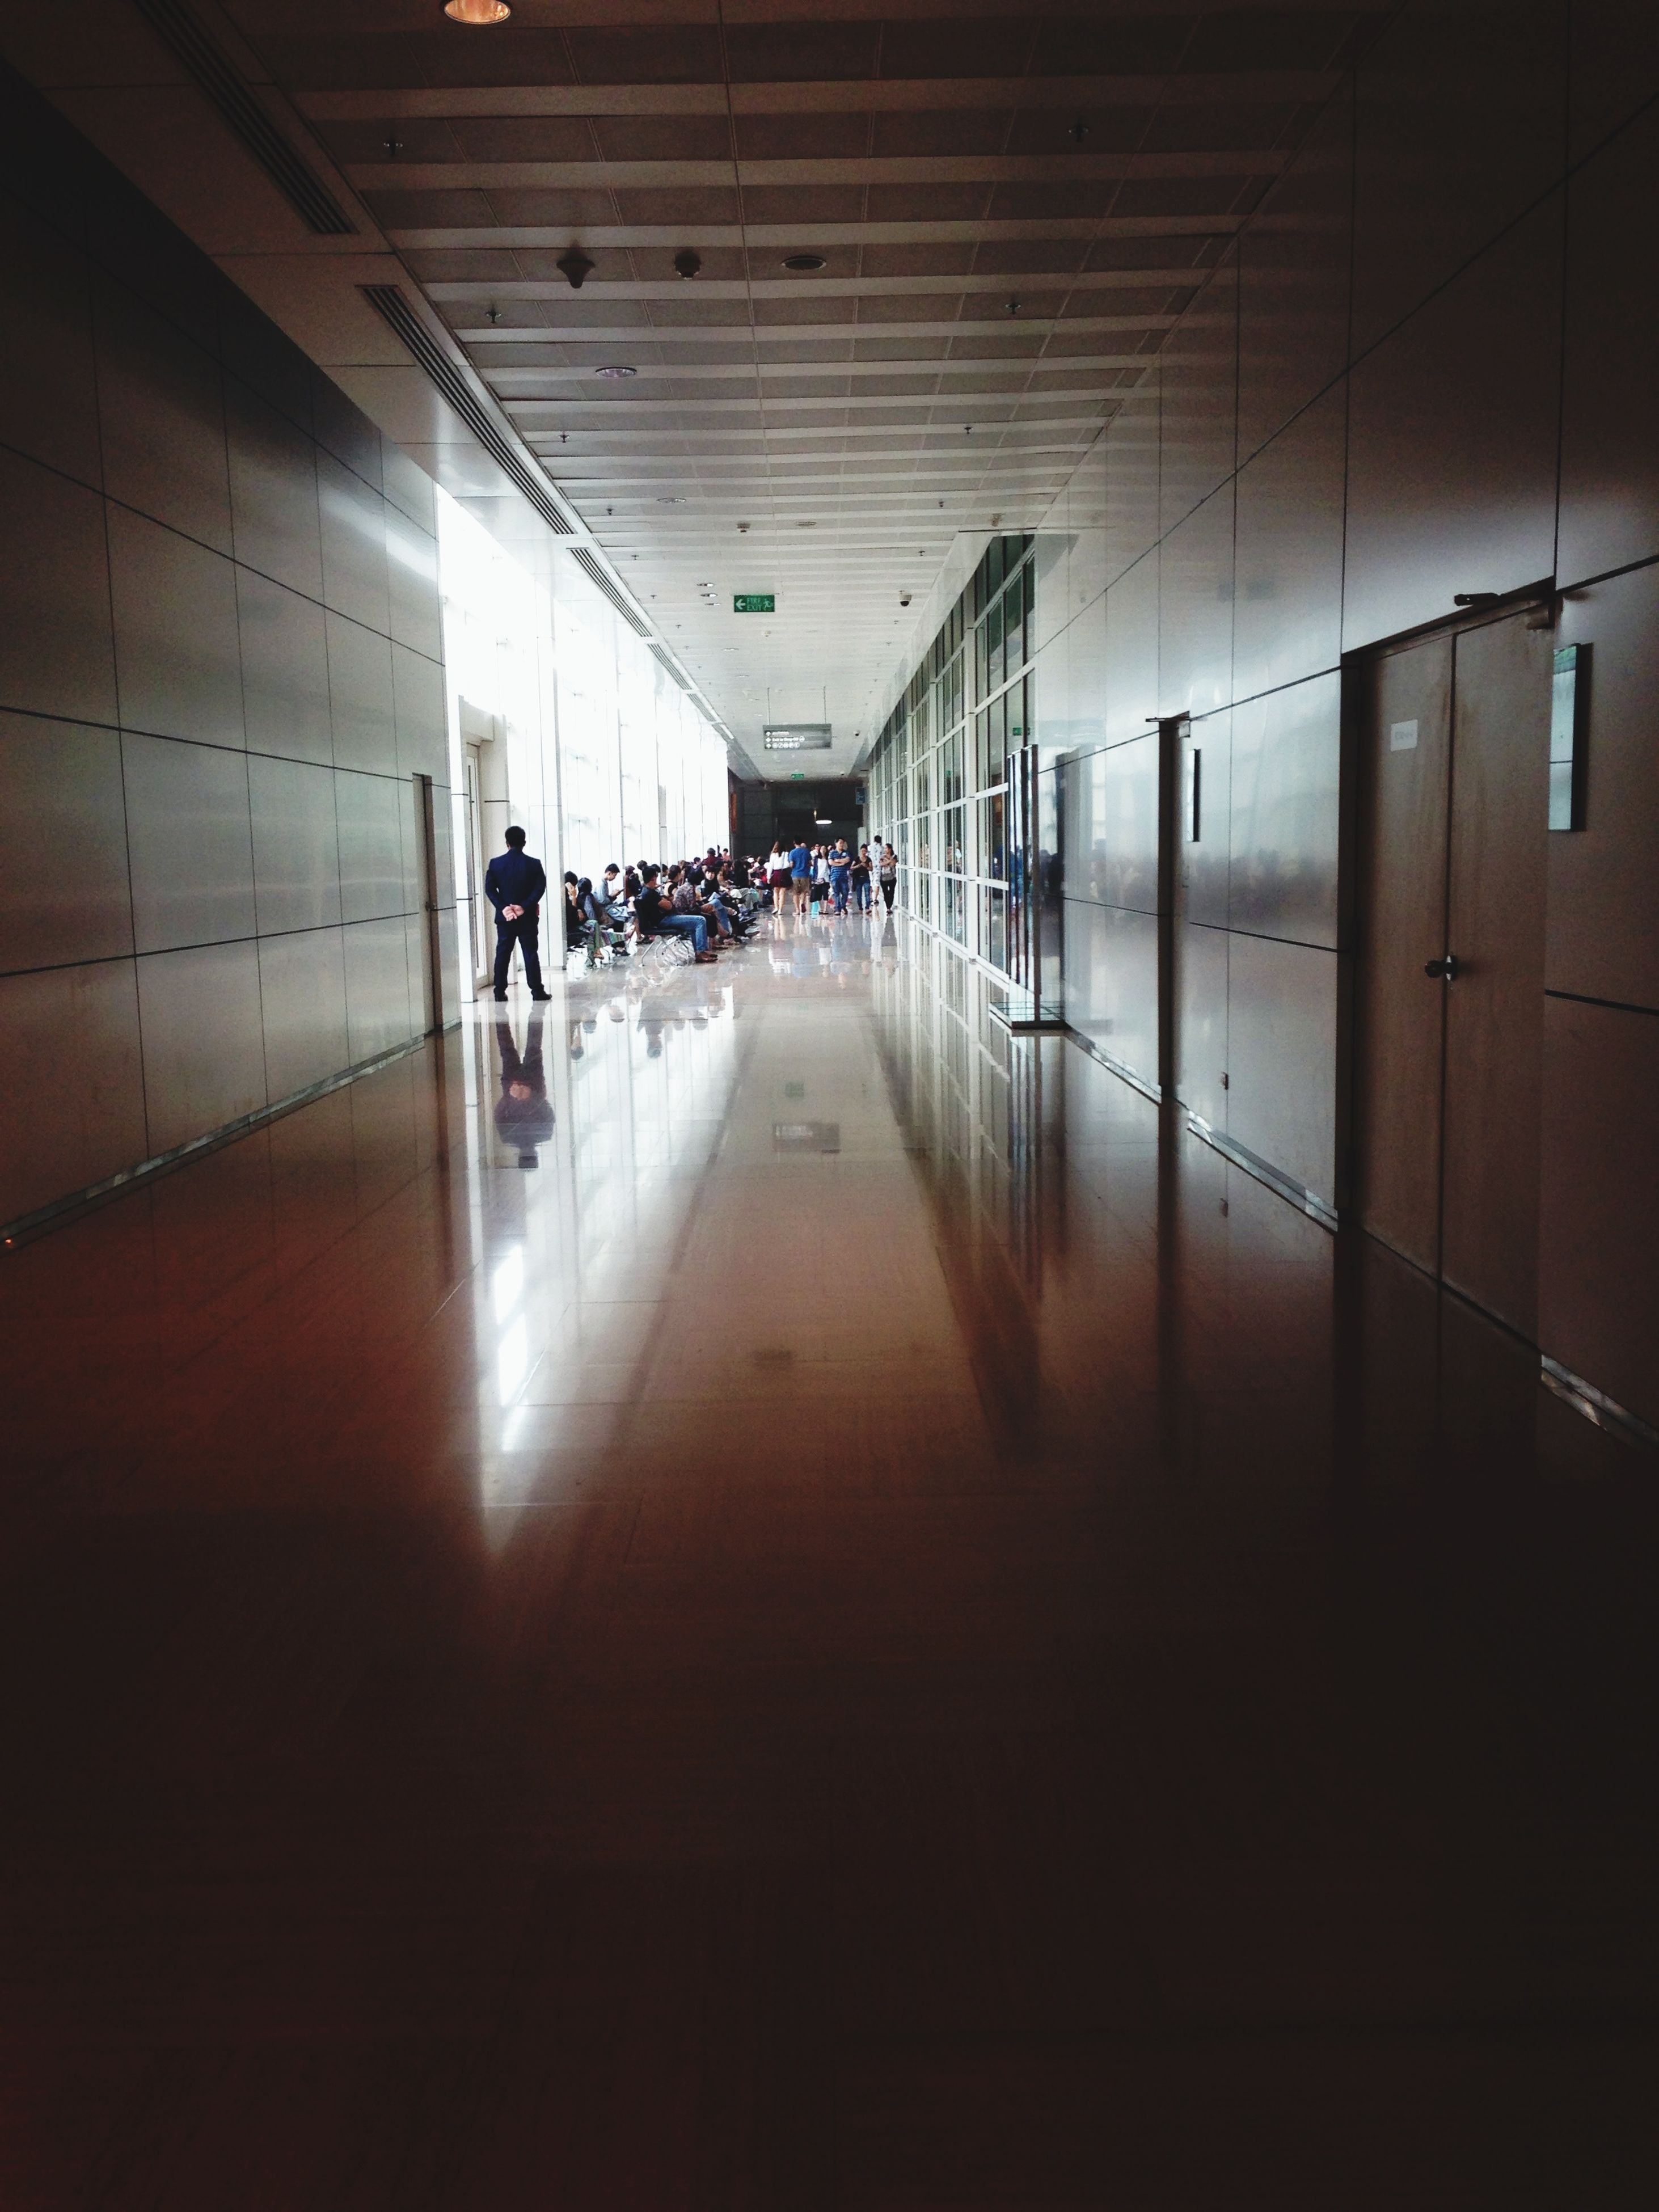 indoors, architecture, built structure, the way forward, illuminated, empty, corridor, ceiling, building, transportation, flooring, narrow, diminishing perspective, interior, incidental people, in a row, absence, window, reflection, lighting equipment